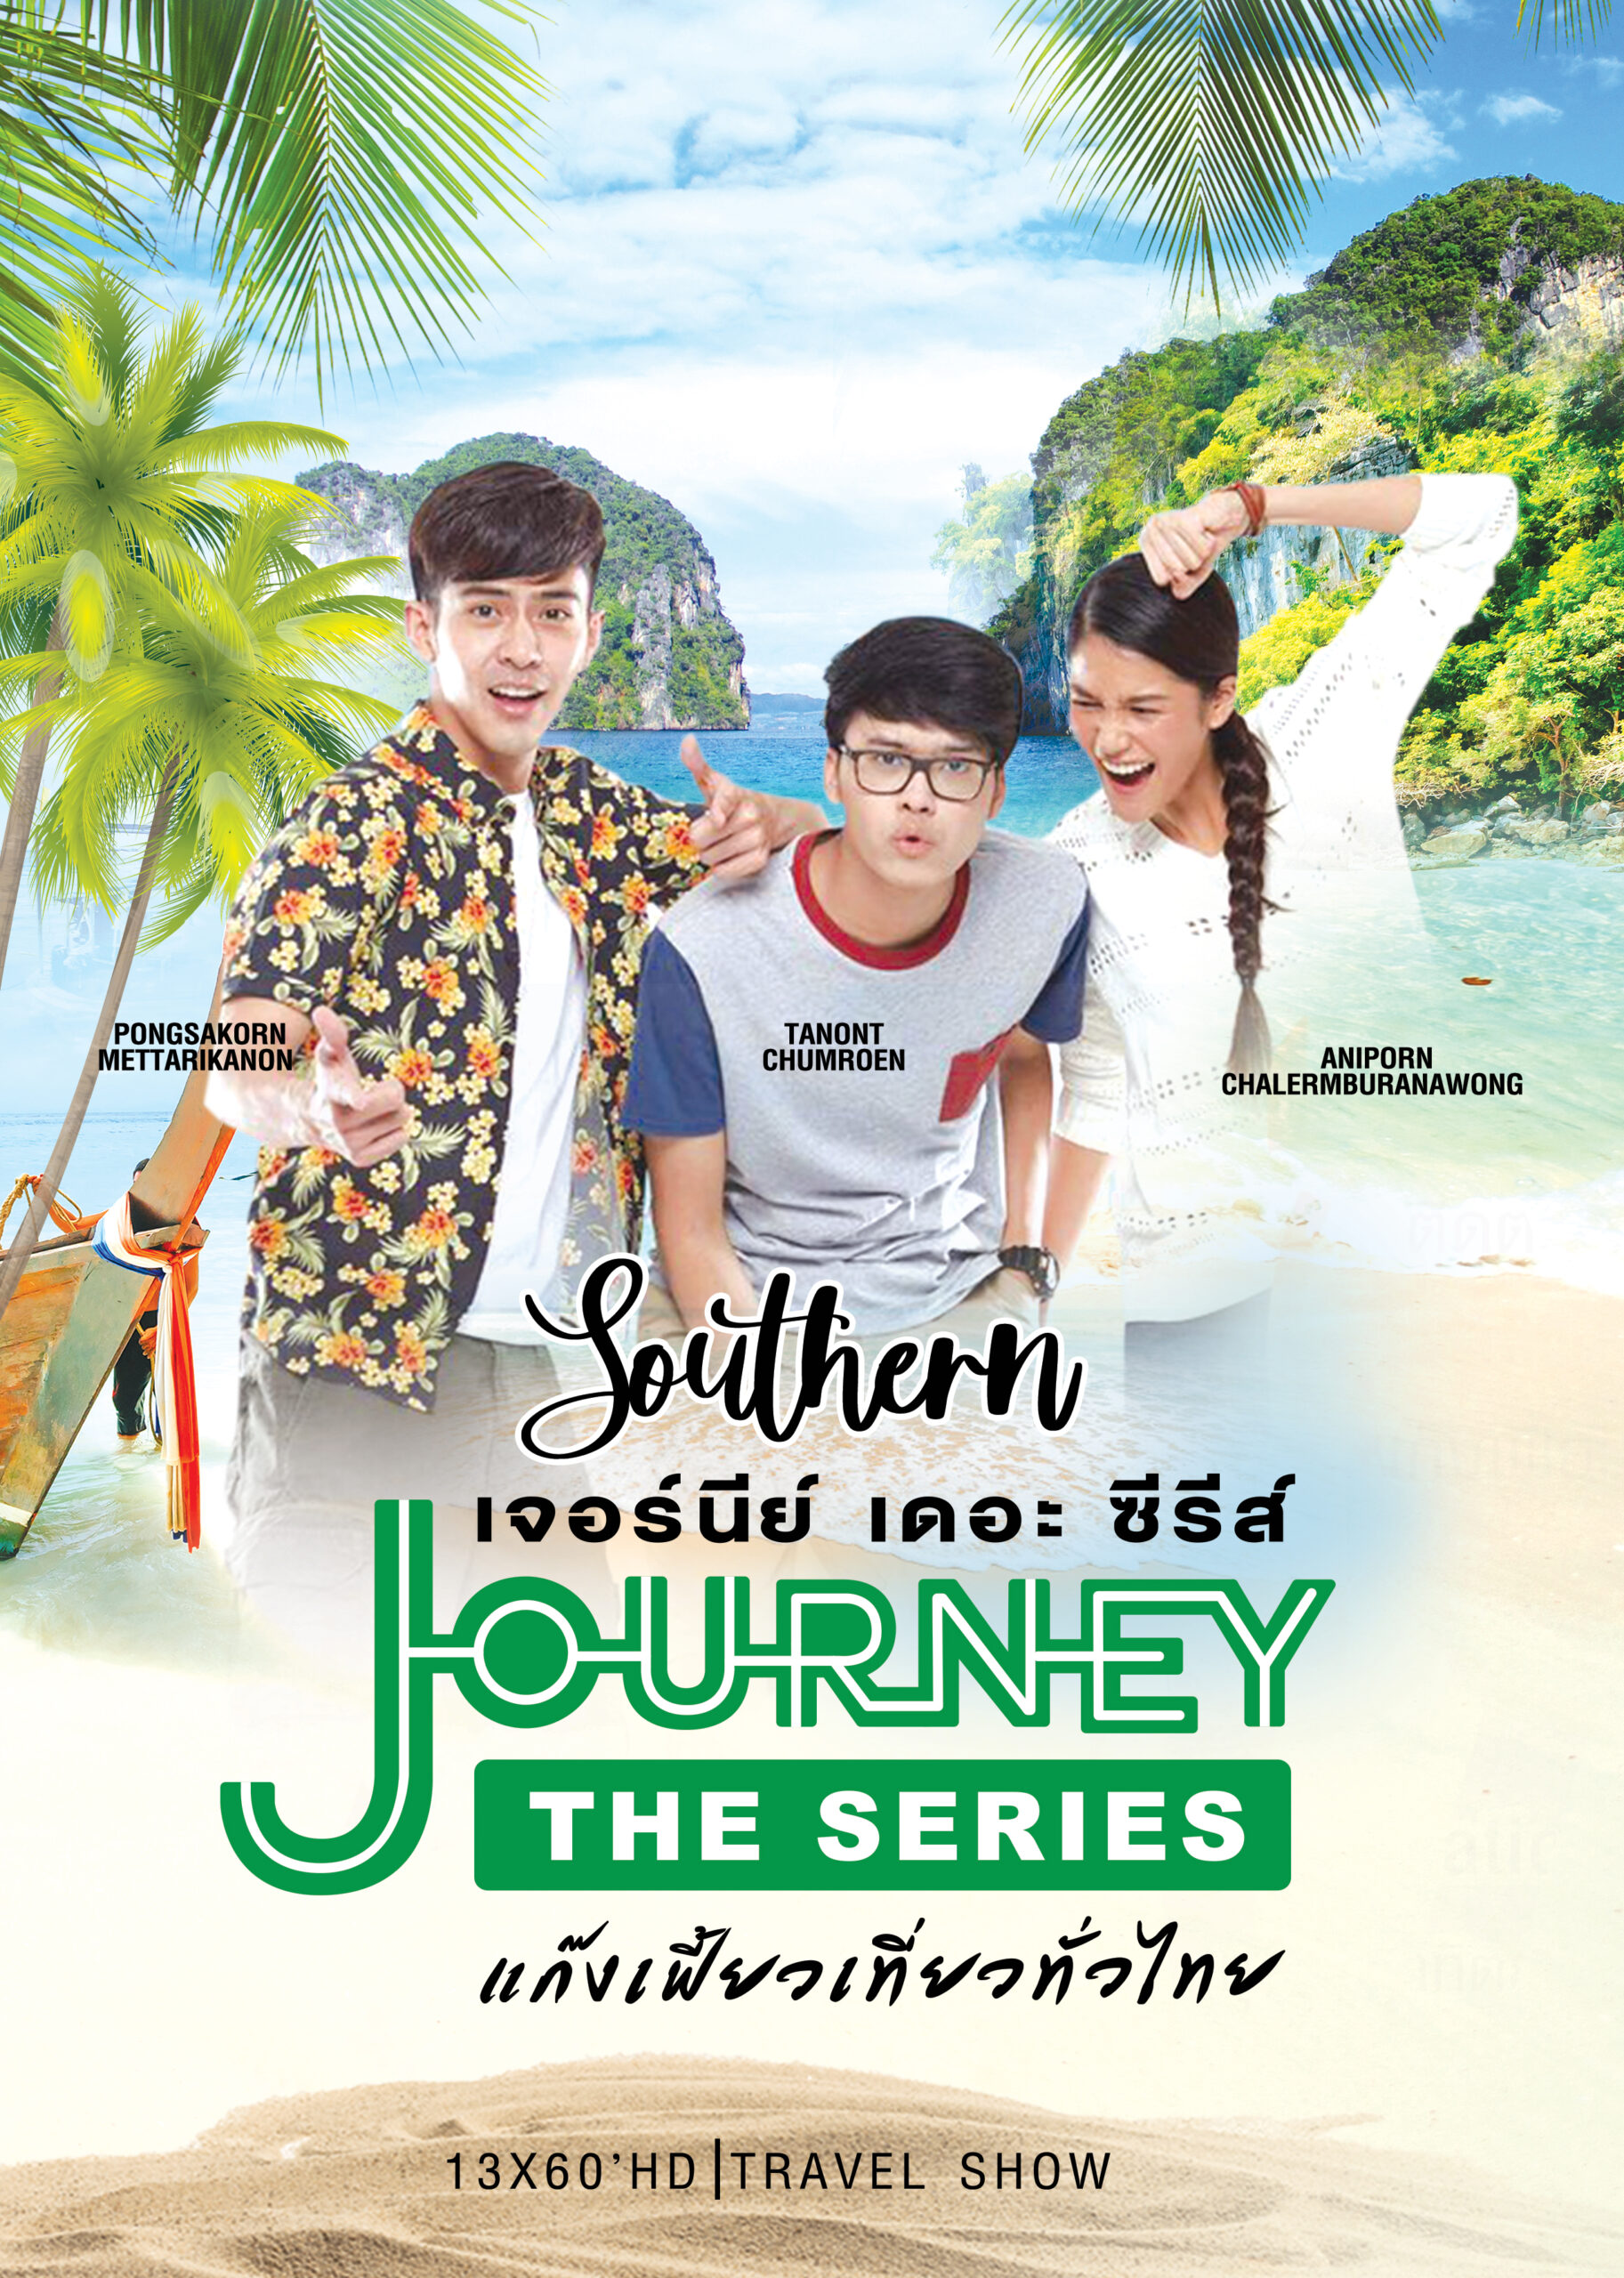 Journey-The-Series - Southern 2